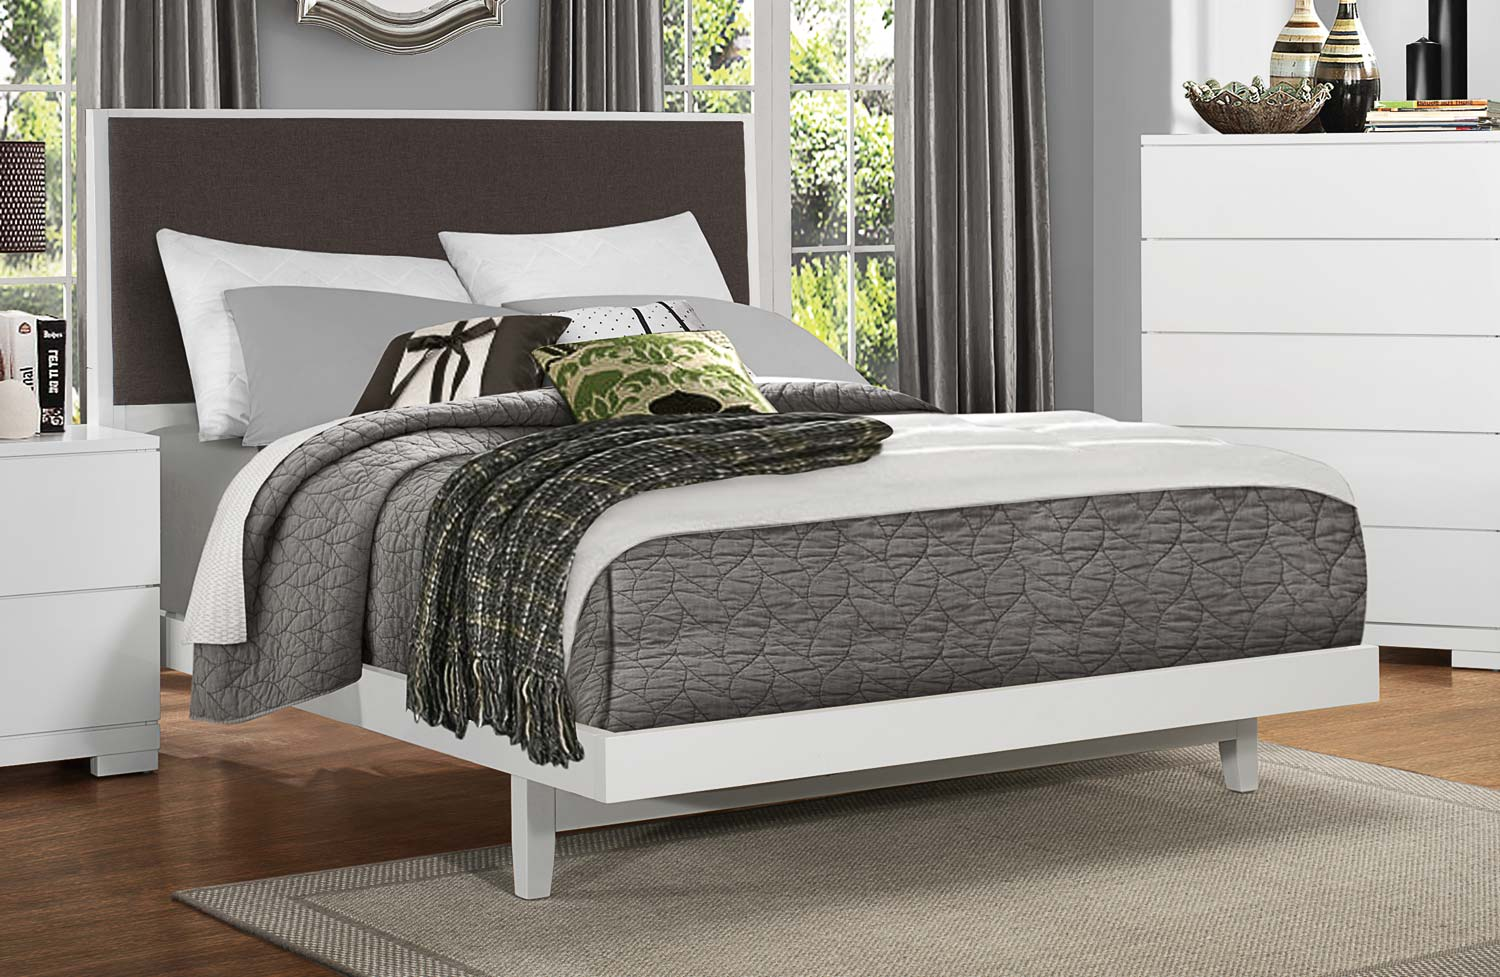 Homelegance Galva Upholstered Bed - Bright White